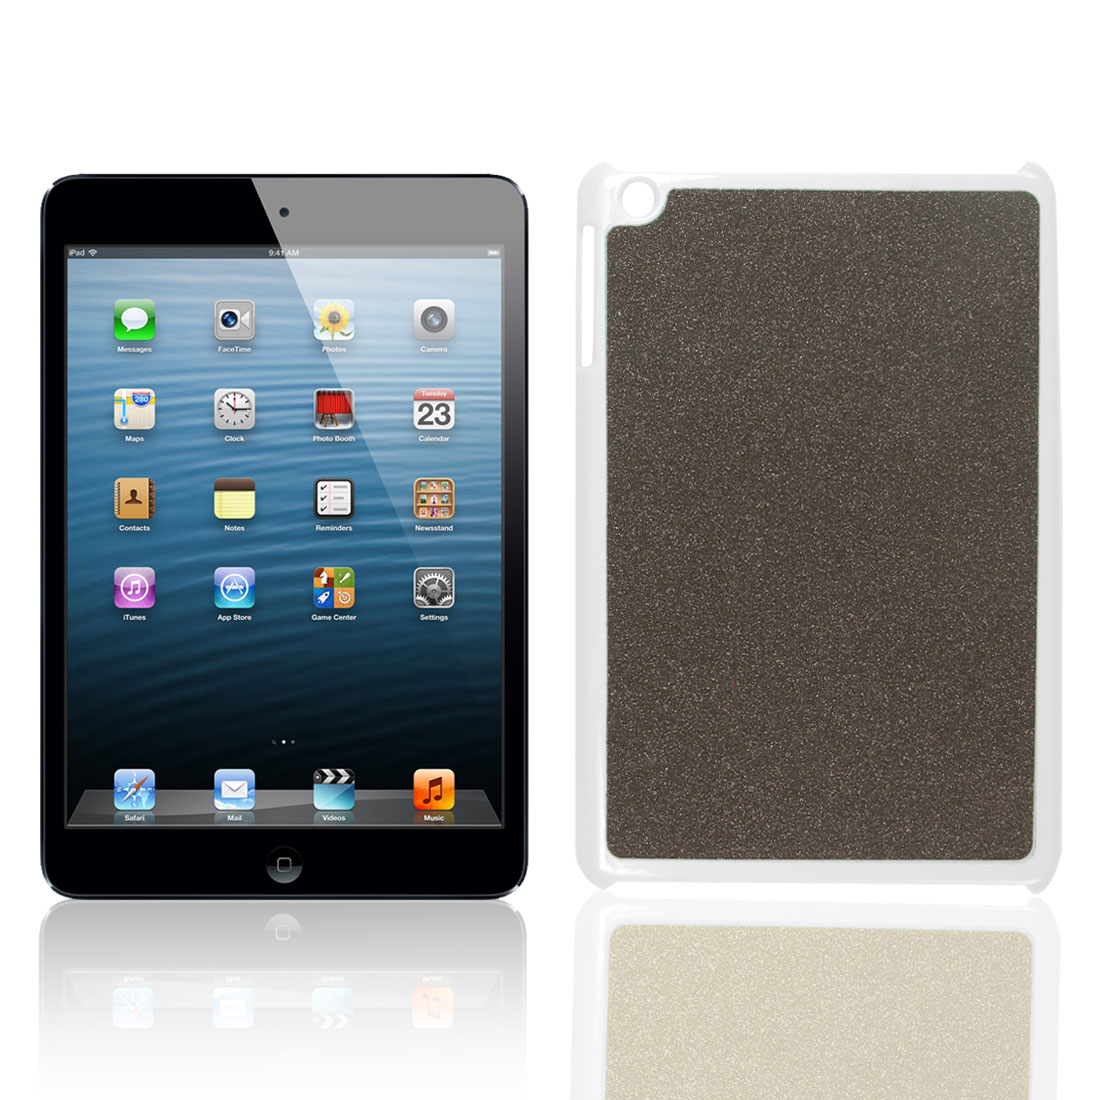 Glittery Sparkling Dark Gray Plastic Back Case Cover for Apple iPad Mini